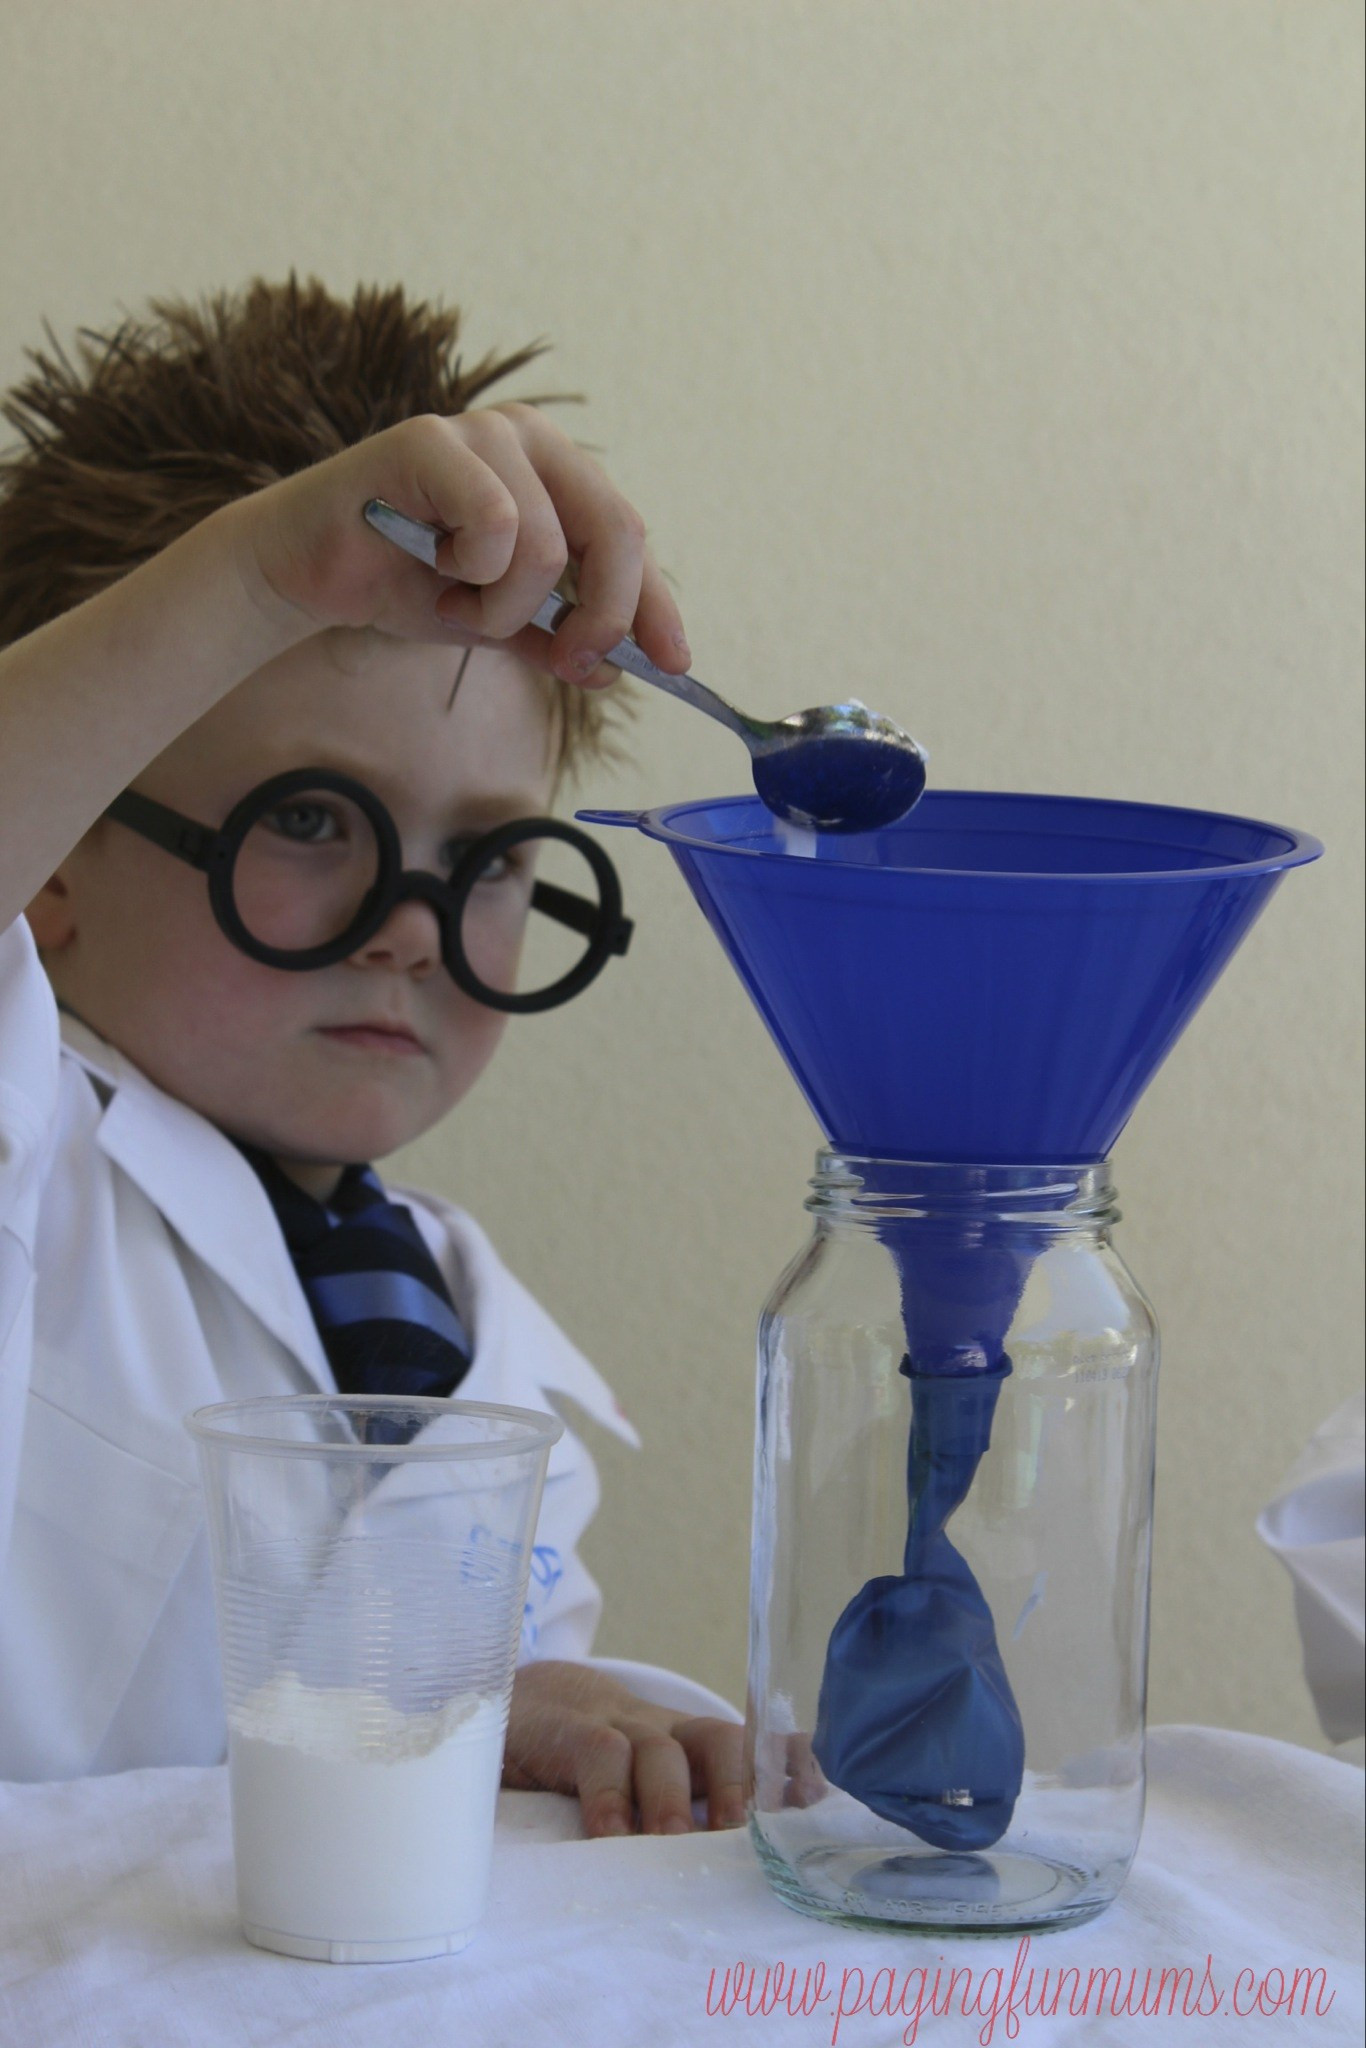 Best ideas about DIY Science Experiments . Save or Pin DIY Lava Lamp Erupting Volcano & MORE Fun Science Now.